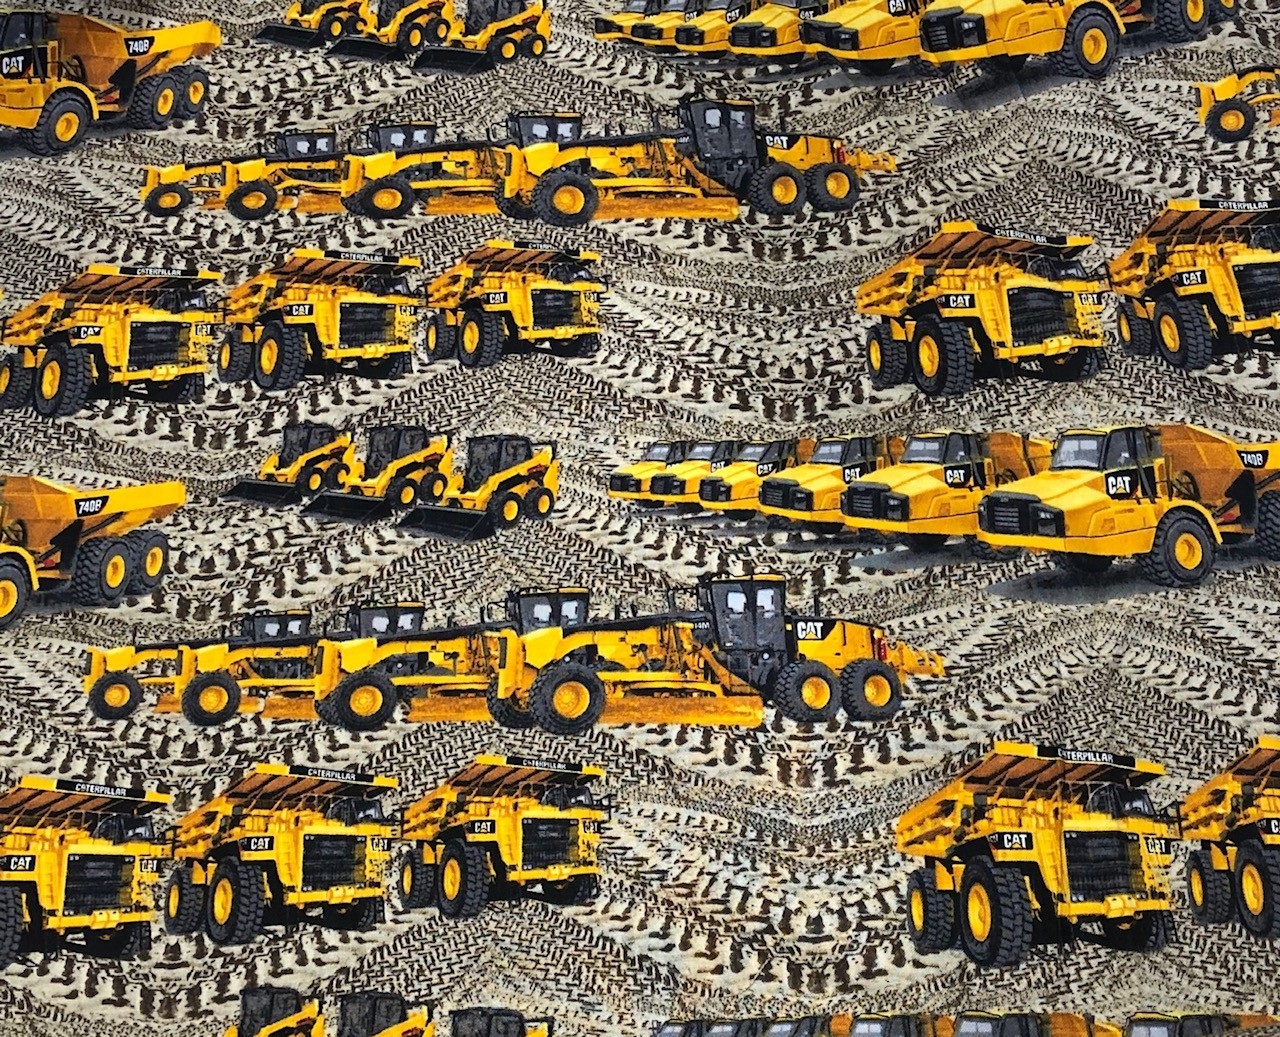 SALE 100% Cotton Fabric Caterpillar Diggers Big Machinery Construction Trucks